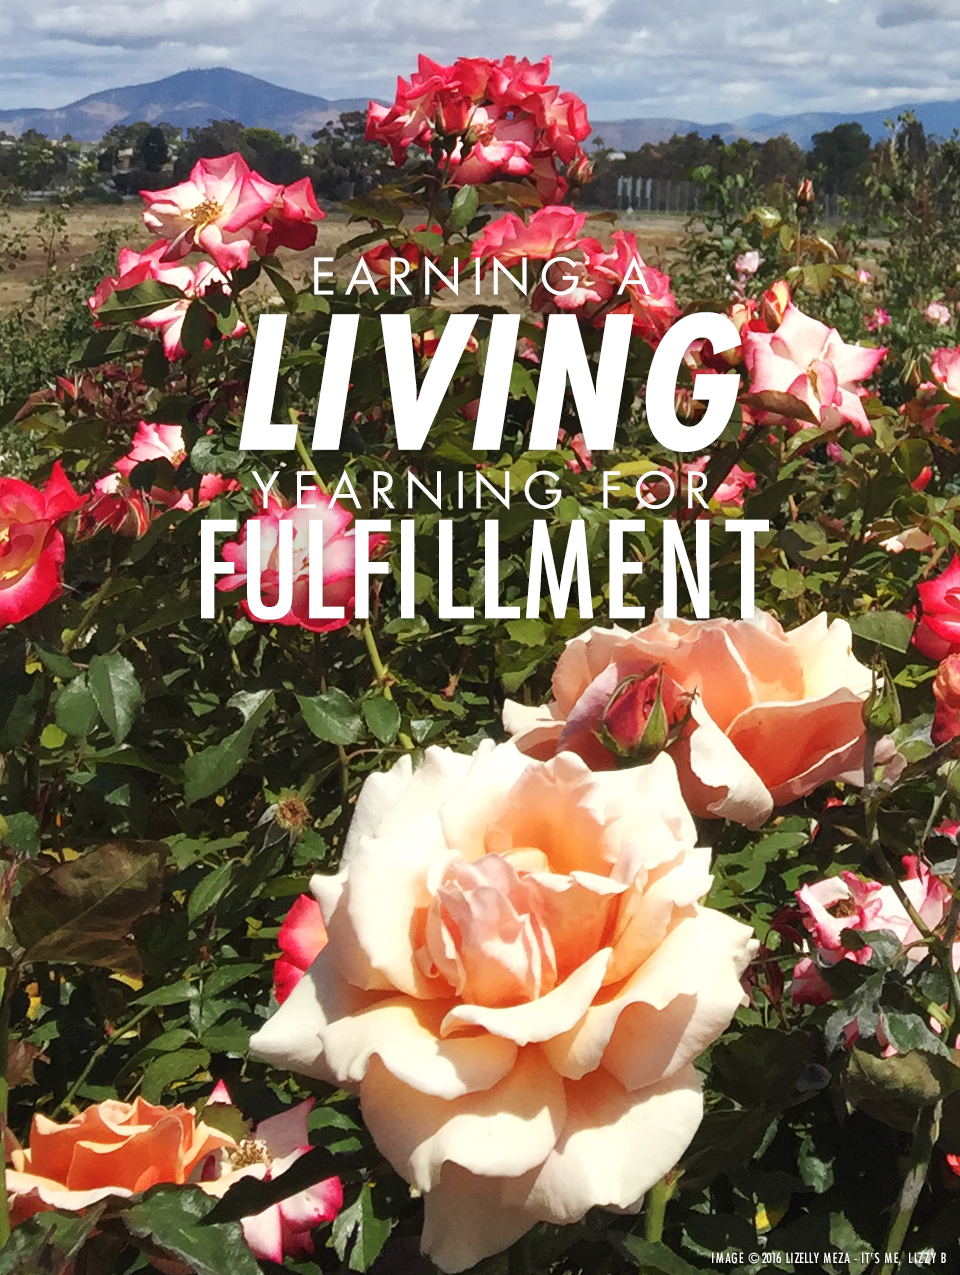 Earning a Living or Yearning for Fulfillment // It's Me, Lizzy B - Musings on Life, Business, & The Pursuit of Everyday Joy // Personal blog of Lizelly Meza from Lizzy B Loves